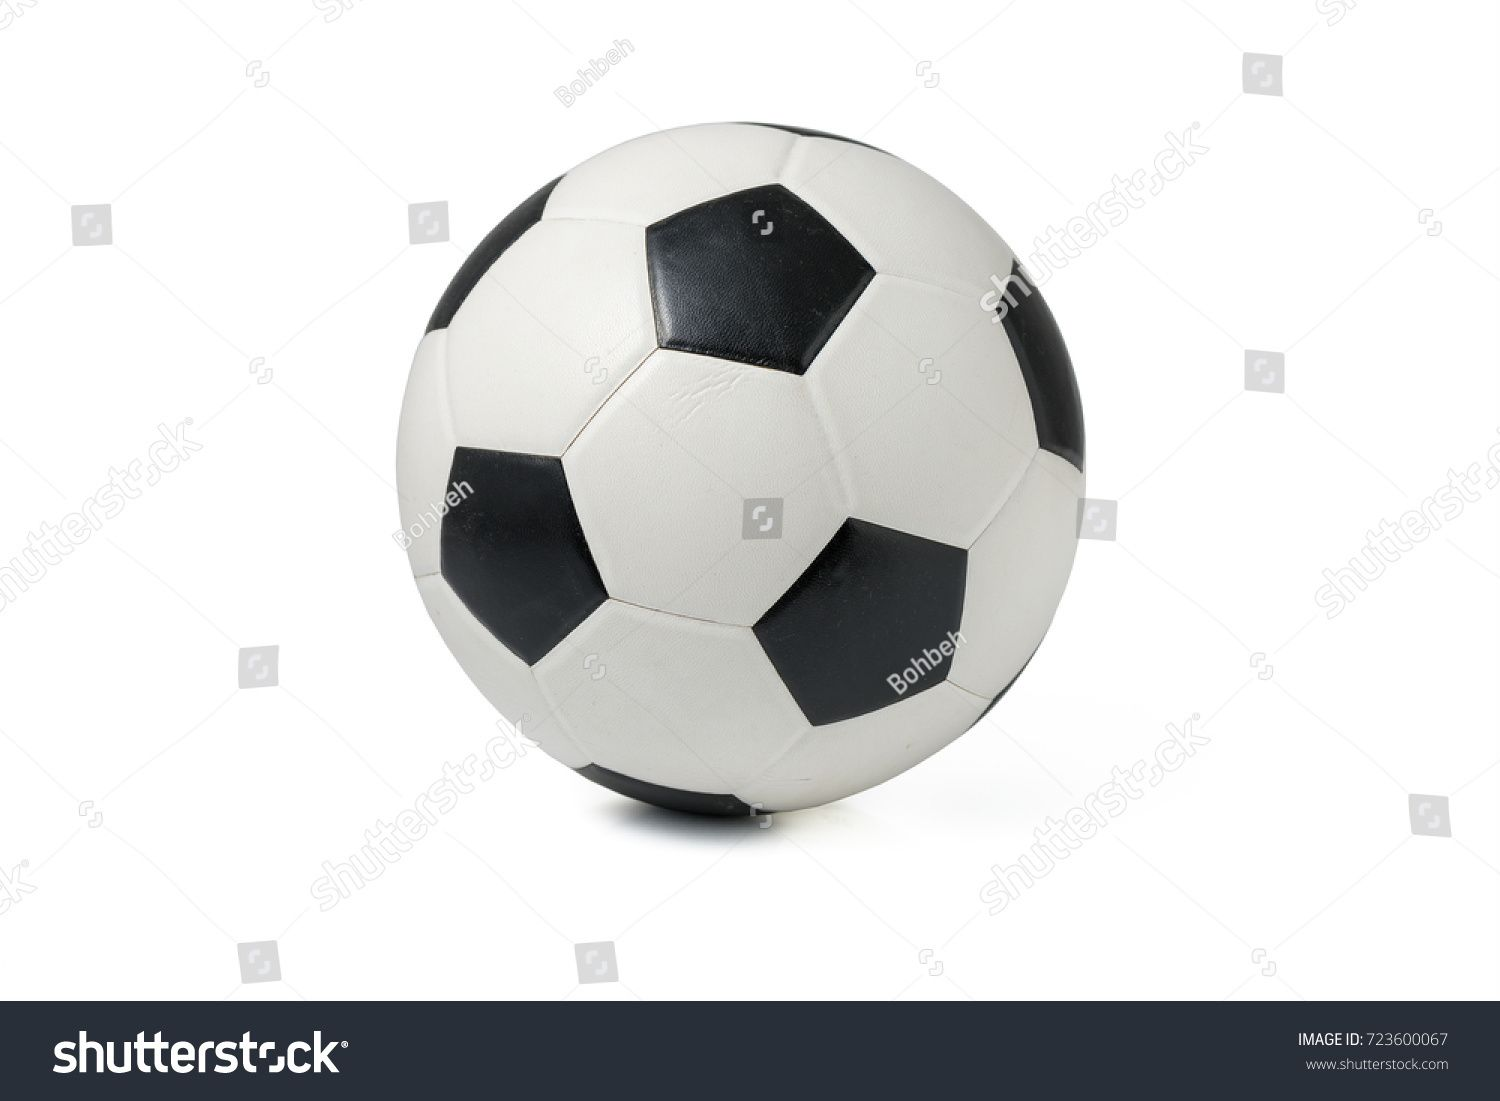 Download Leather Soccer Ball Isolated On White Background Ad Affiliate Ball Soccer Leather Background Soccer Ball Soccer Photo Editing